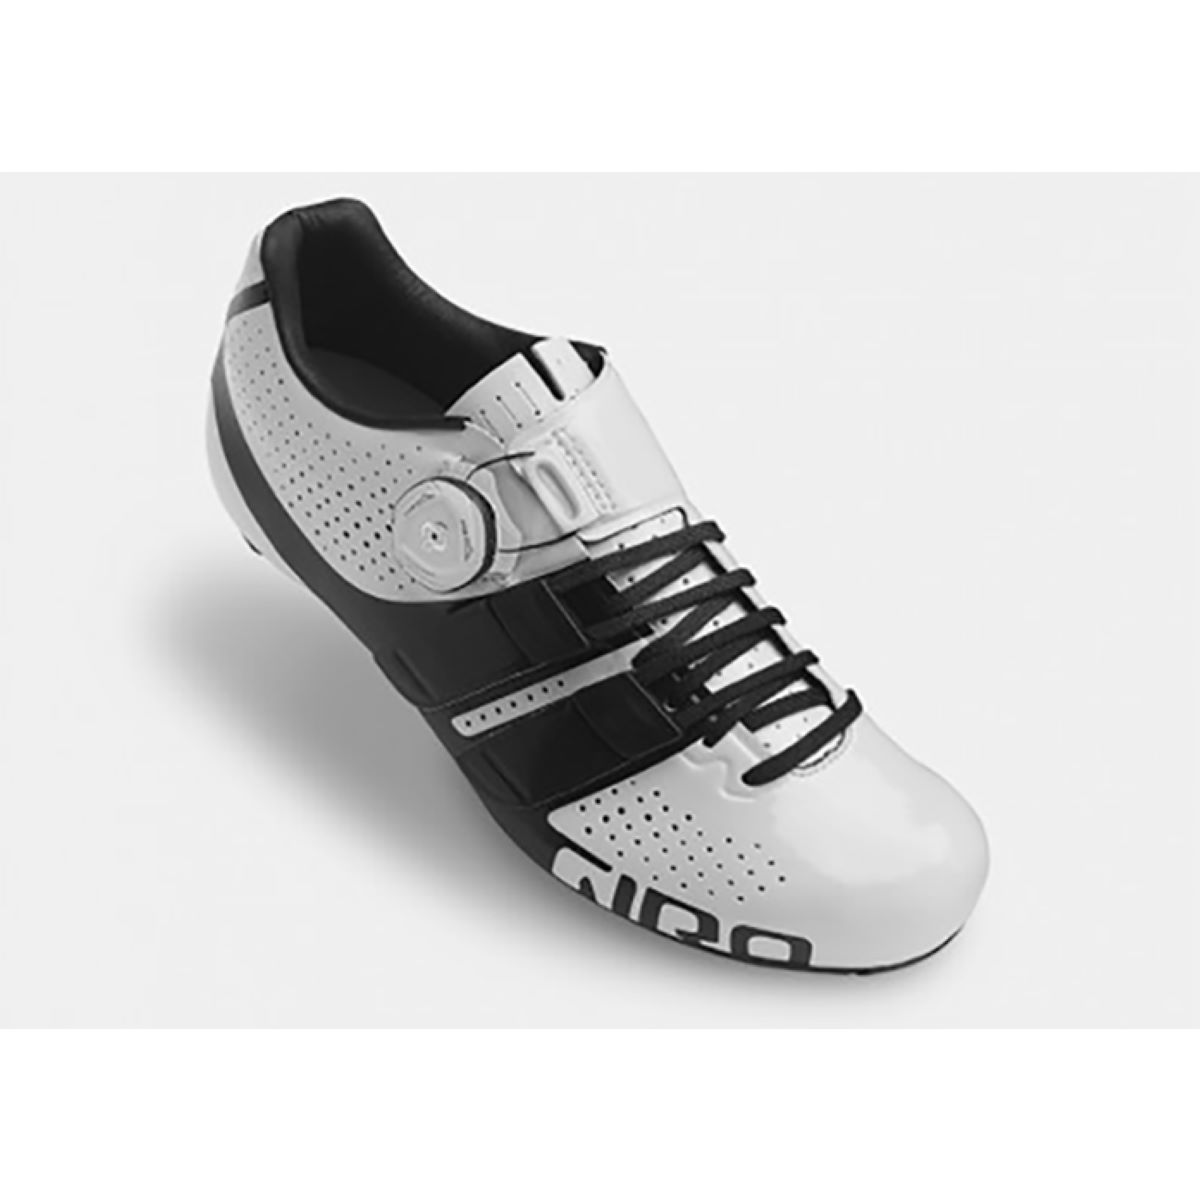 Giro Giro Factress Techlace Women